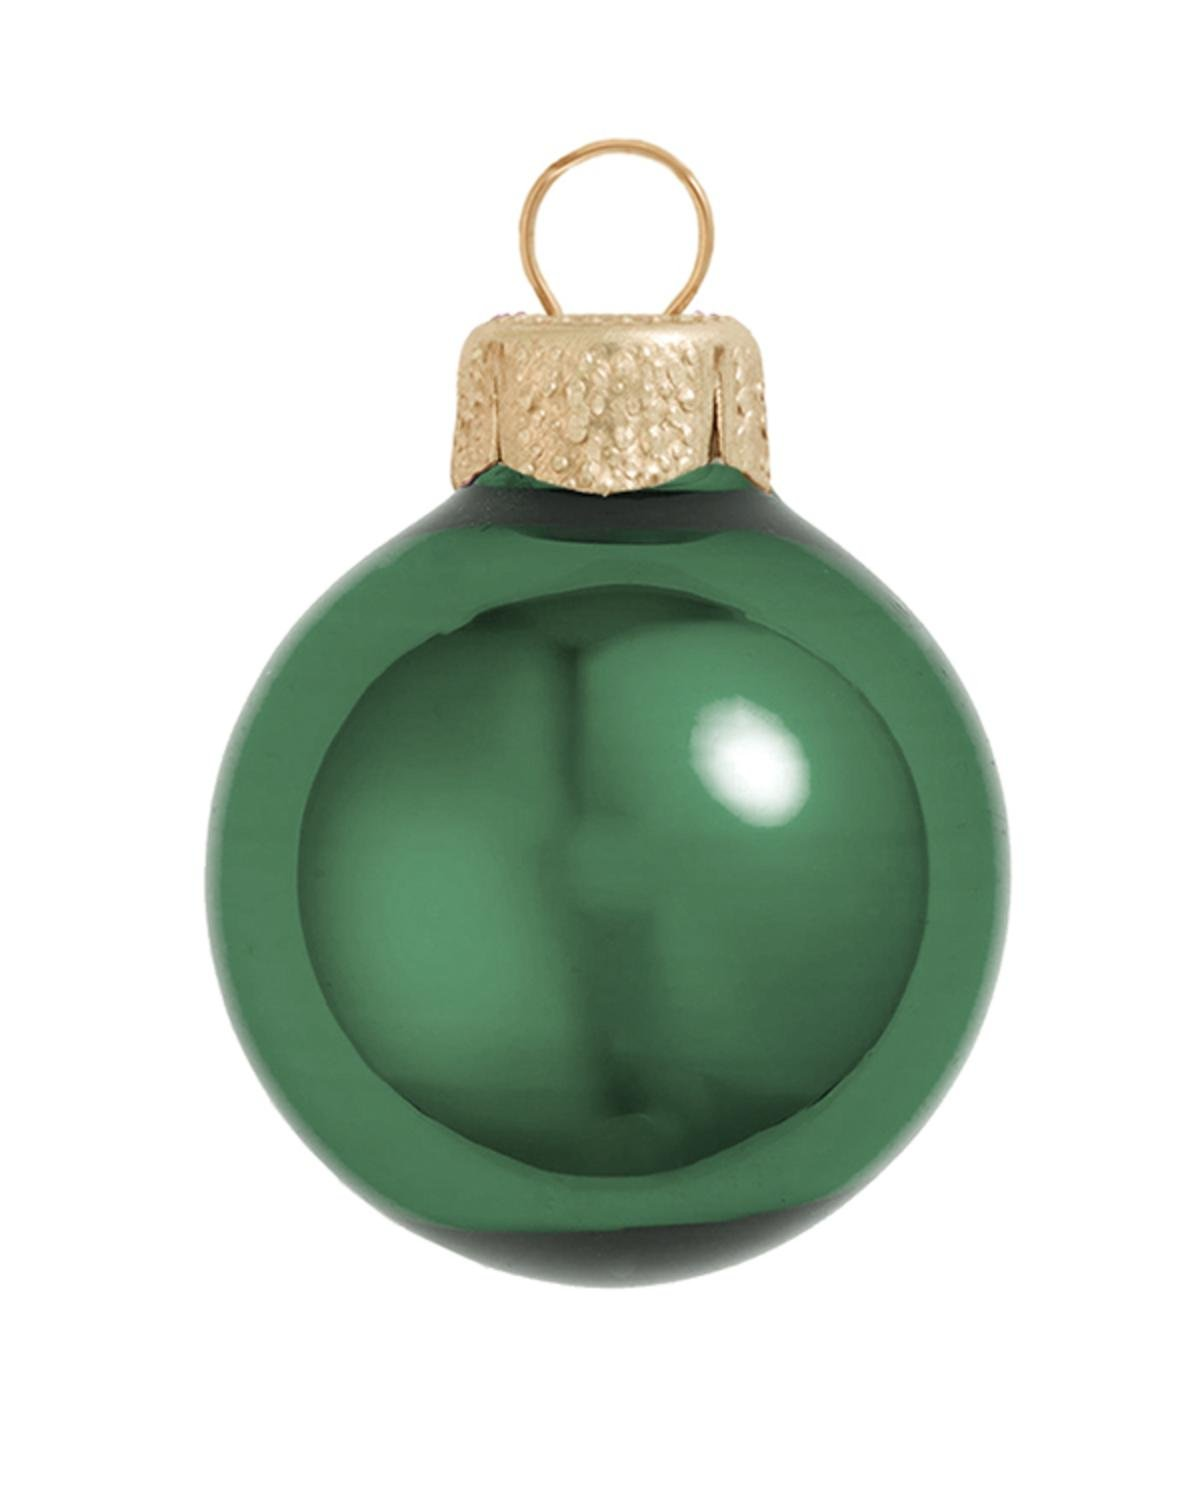 28ct Shiny Emerald Glass Ball Christmas Ornaments 2'' (50mm)